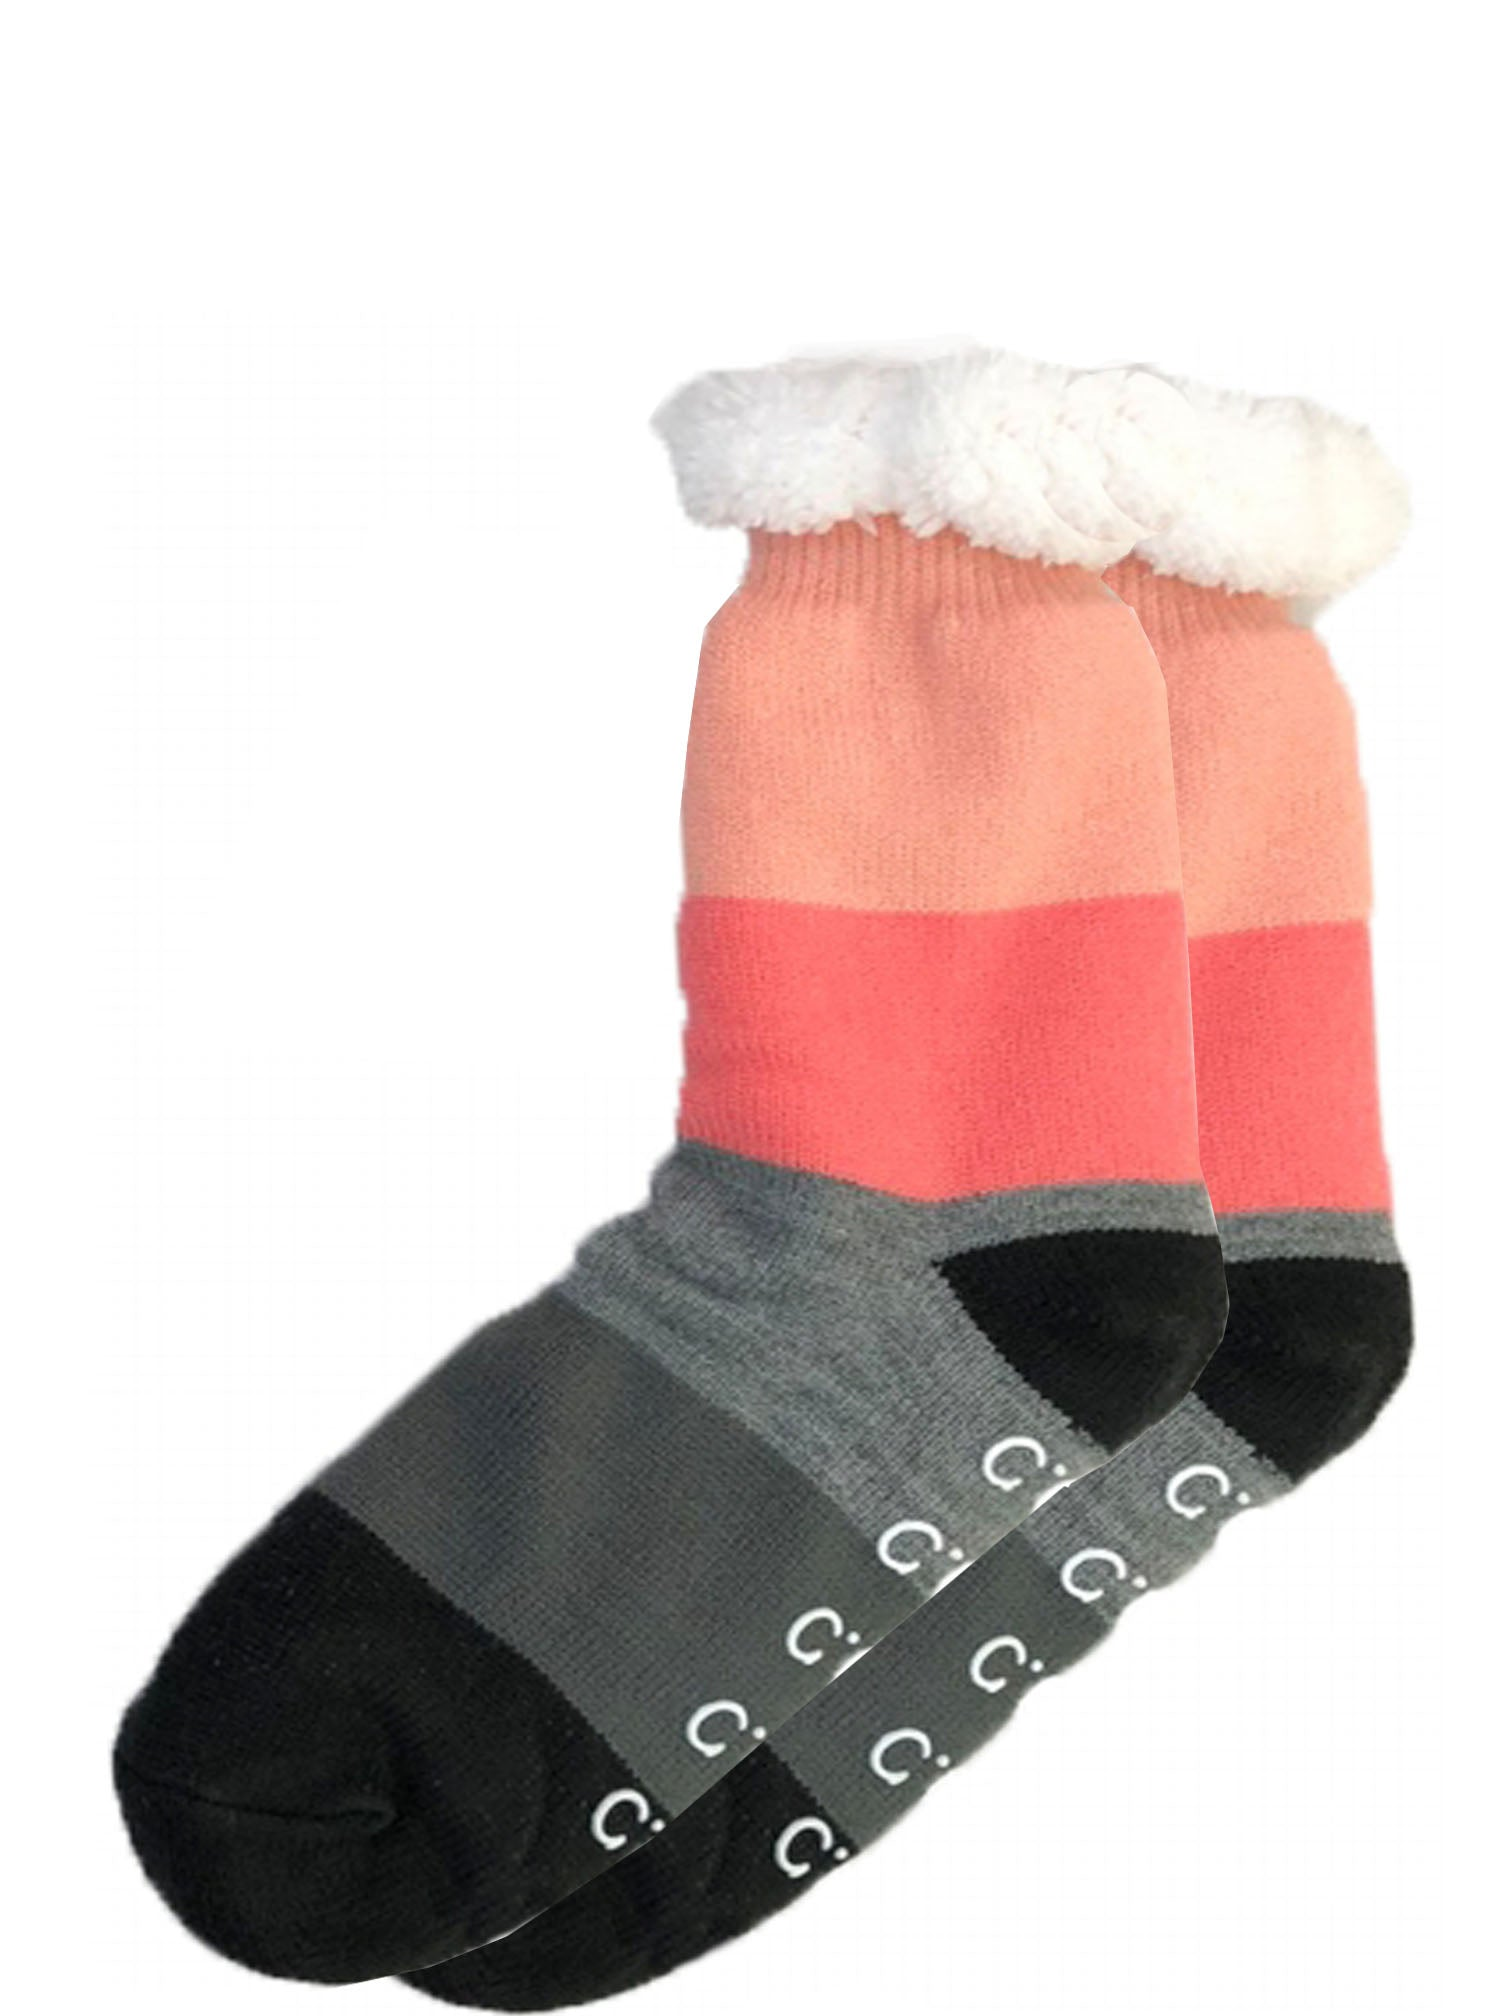 SL-01 C.C Sherpa Socks Color Block